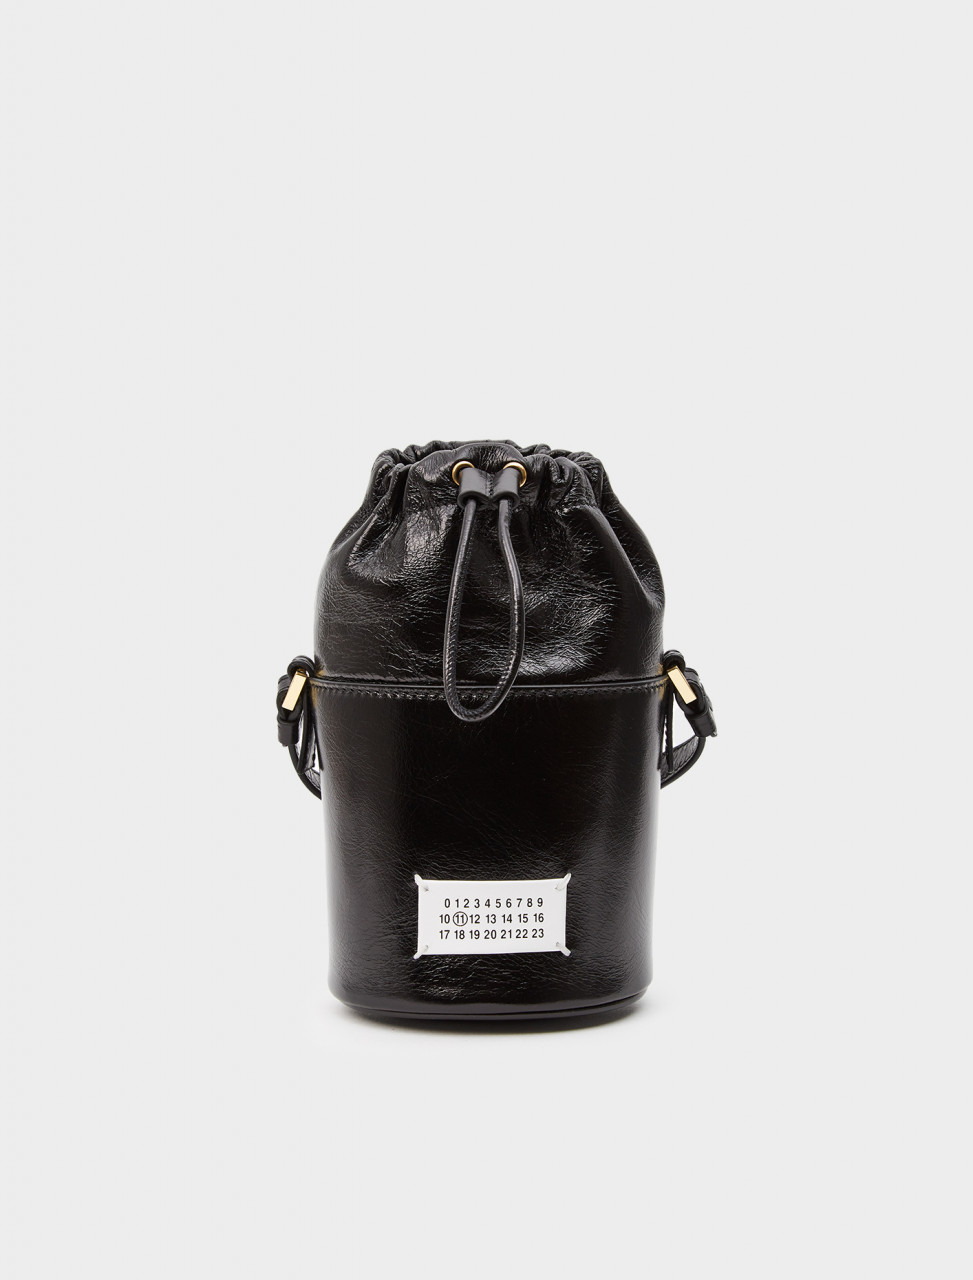 256-S56WG0164-PS298-T8013 MAISON MARGIELA 5AC BUCKET BAG BLACK